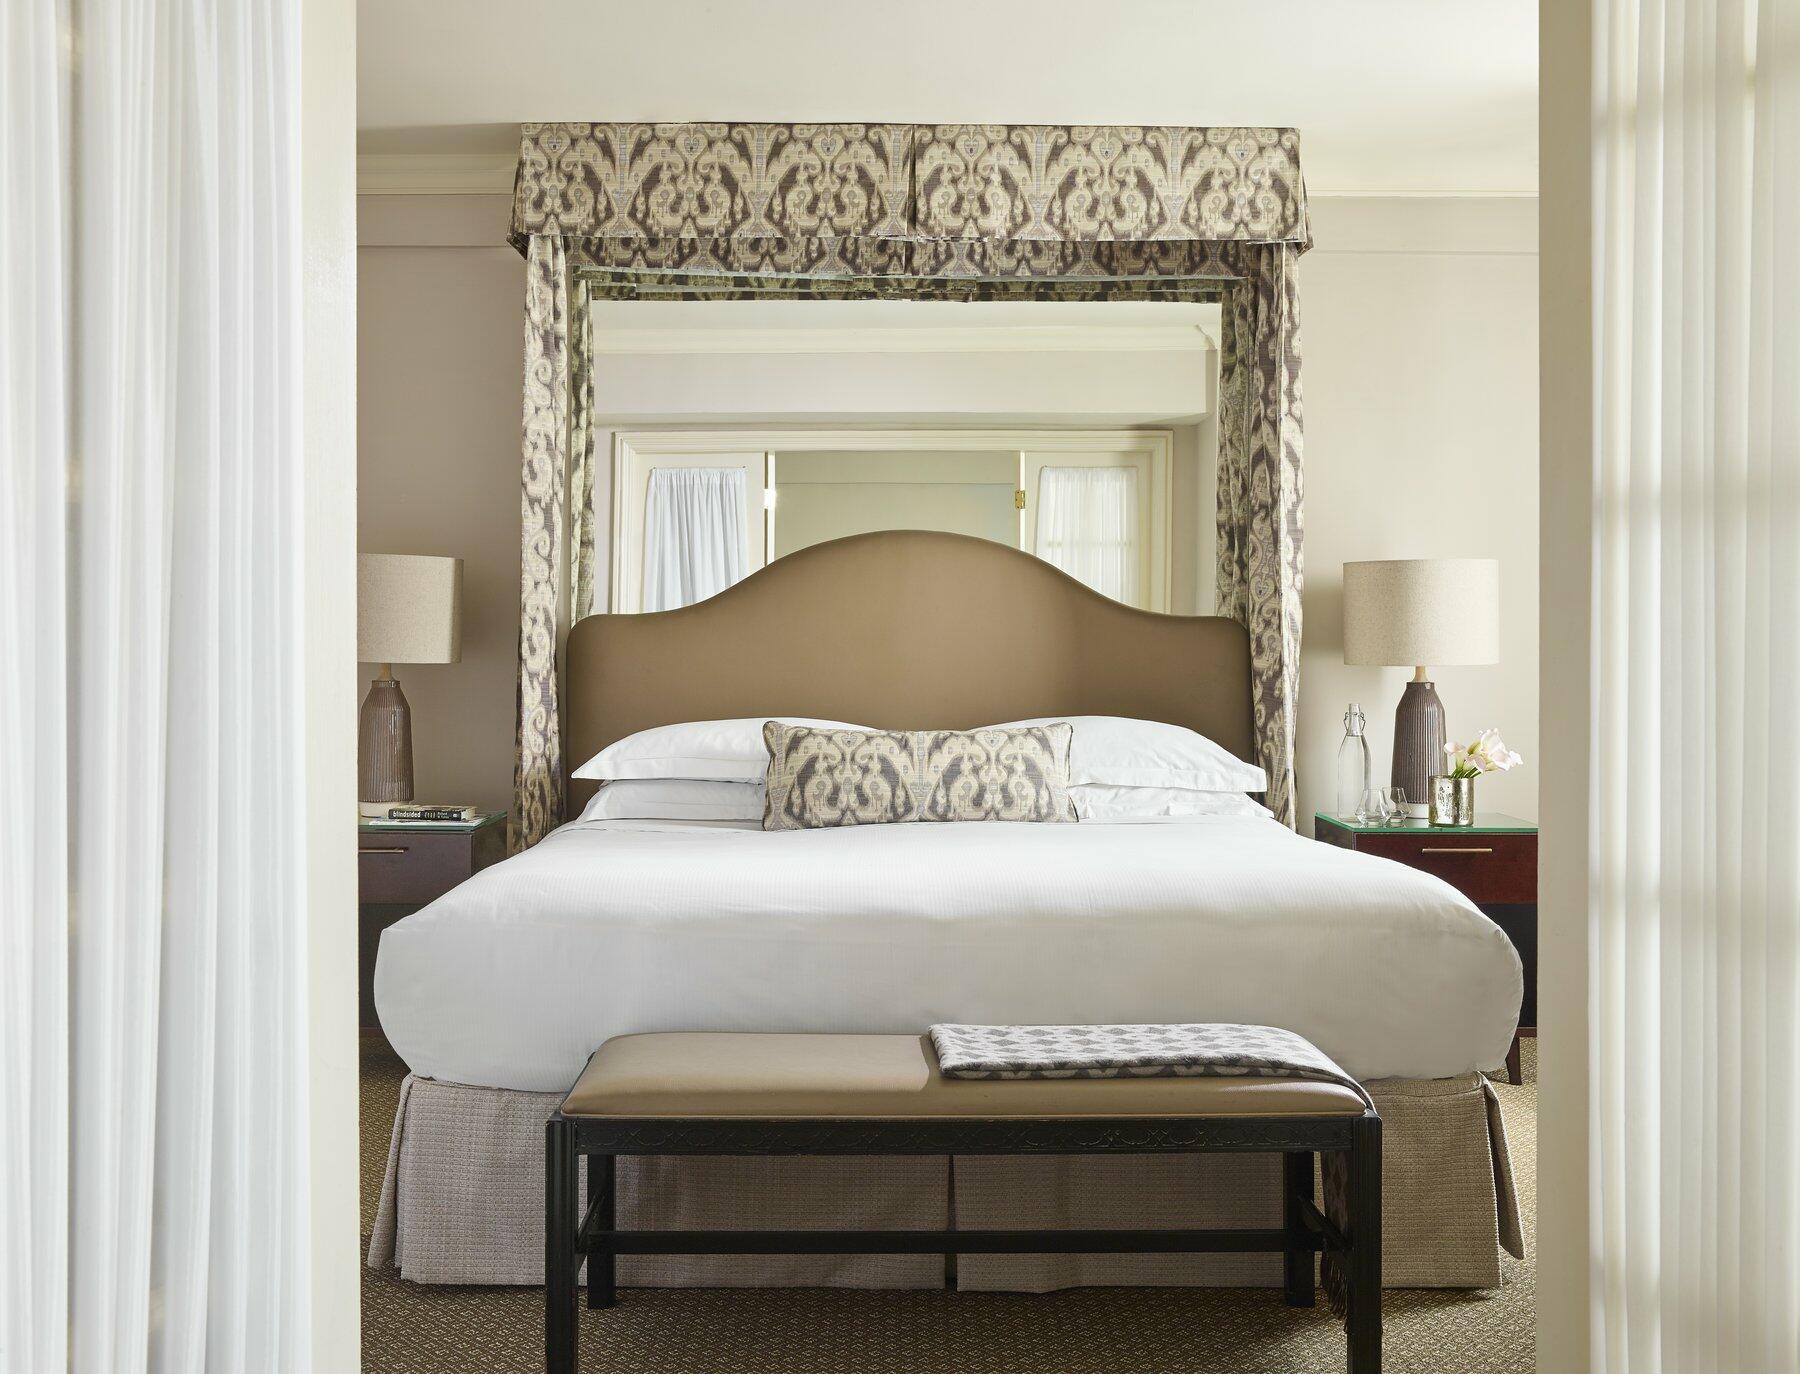 Room with one king bed, two night stands and french-doors